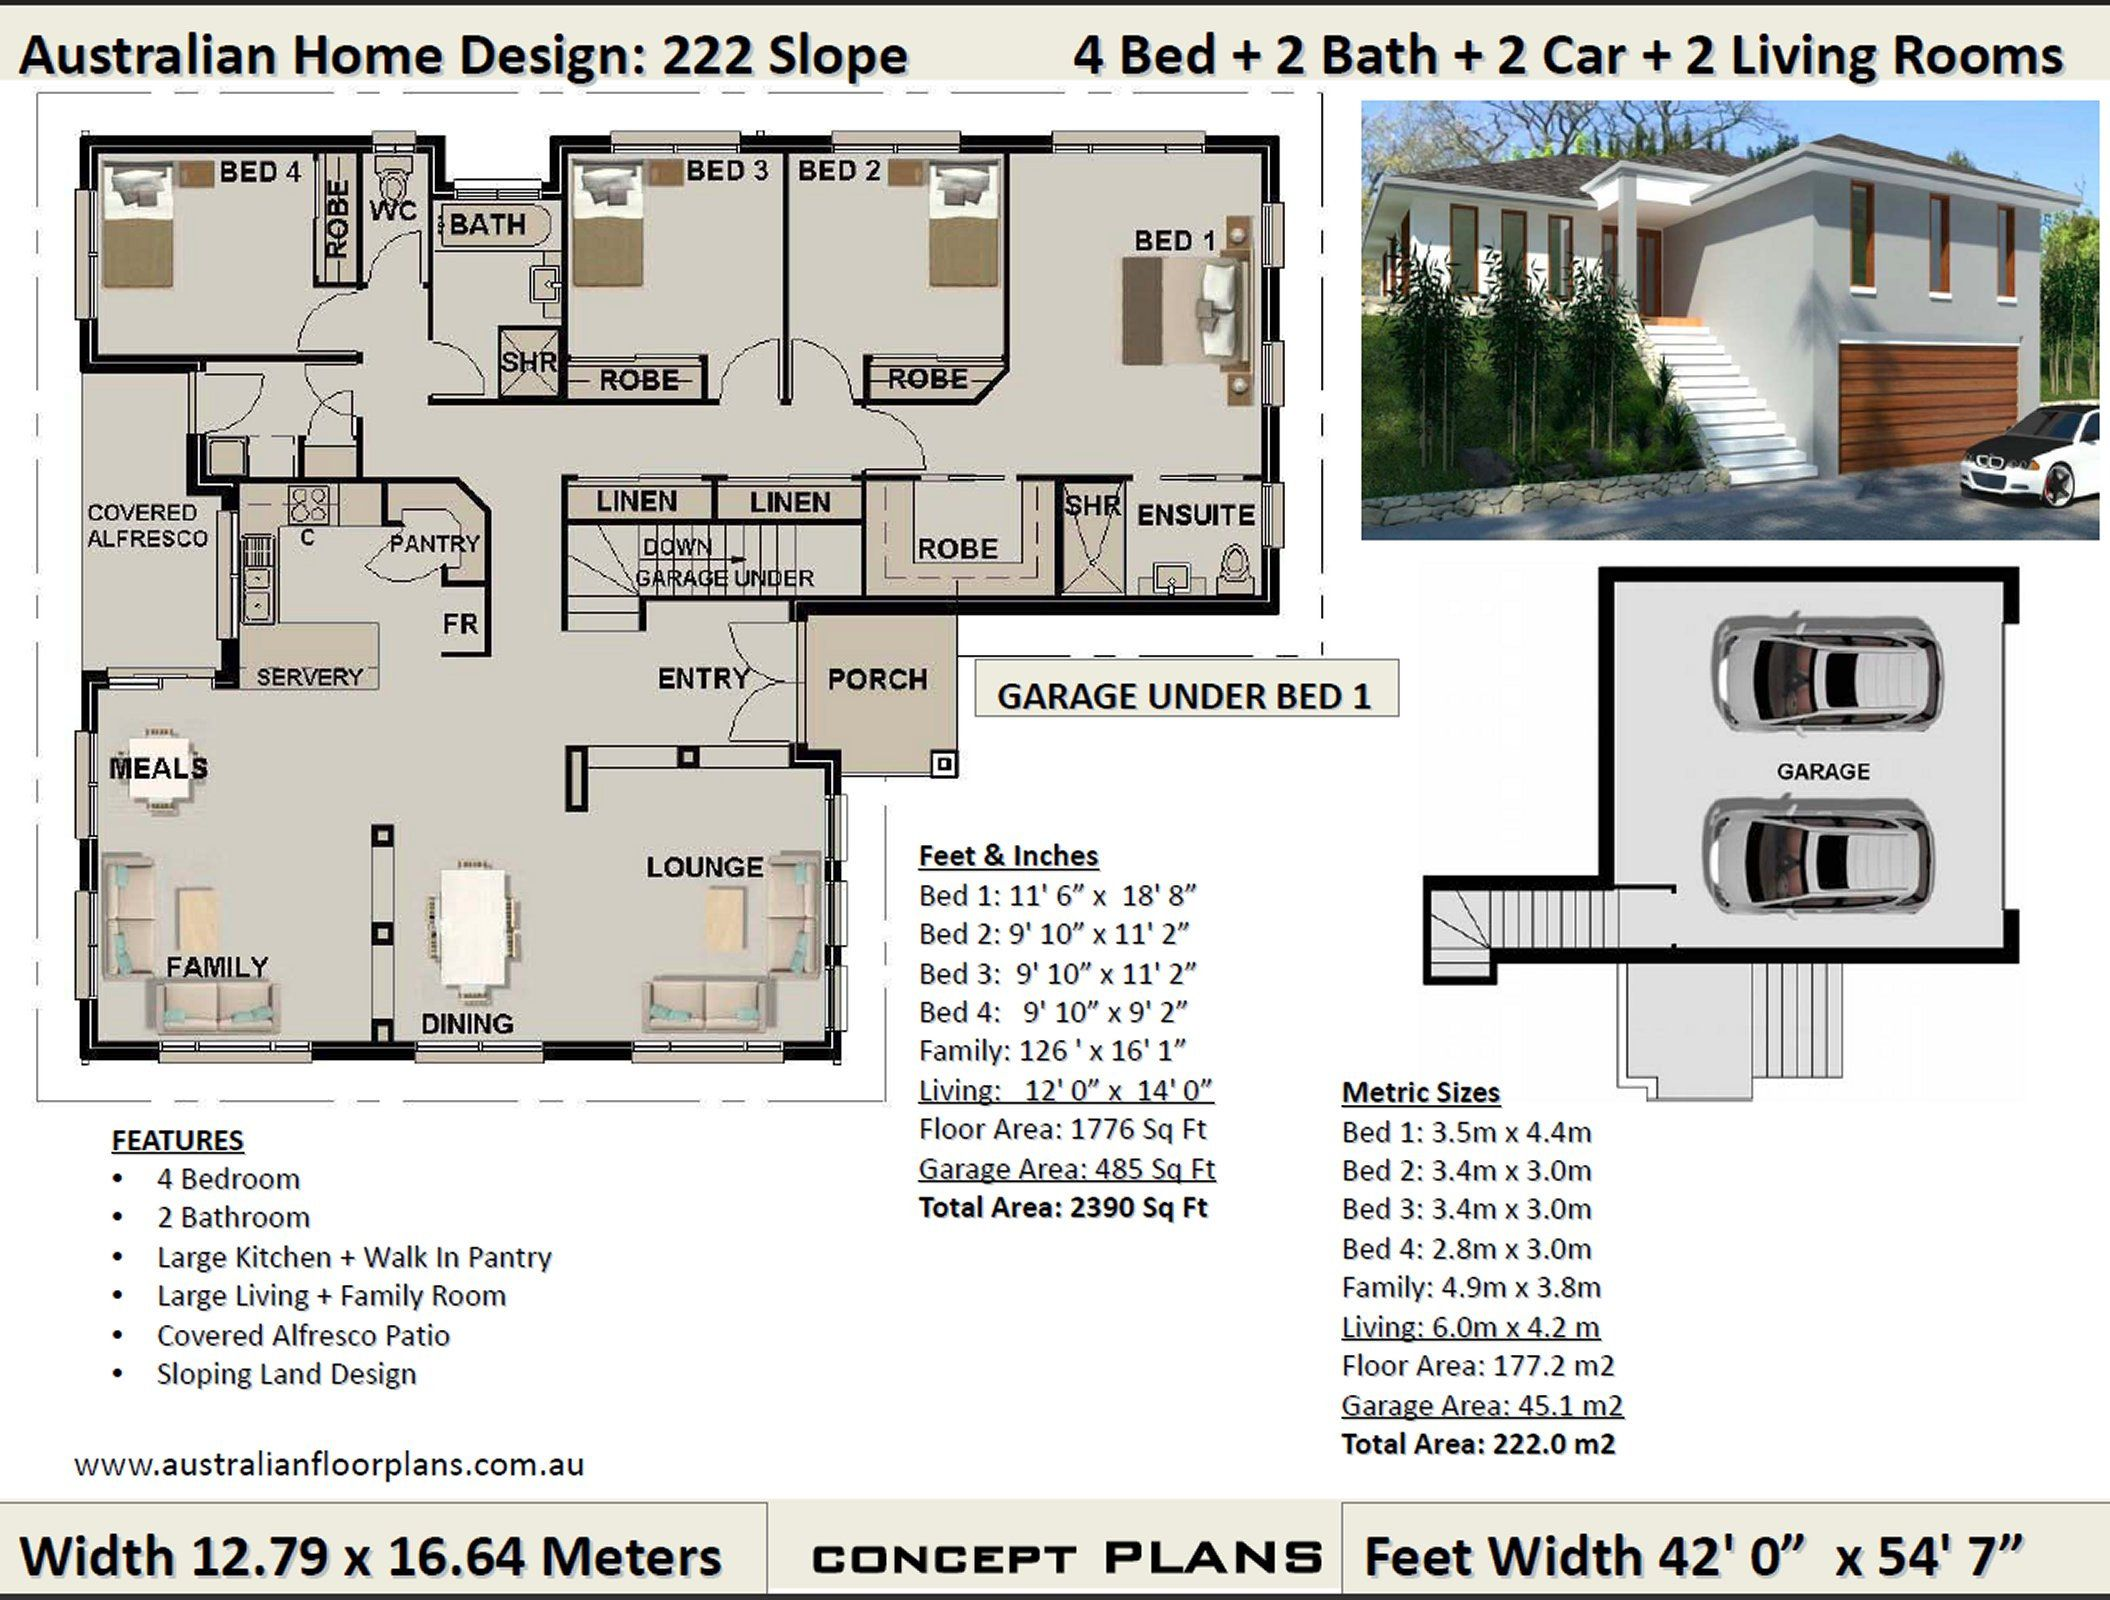 1776 Sq Feet 177 M2 Sloping Land House Plan Sloping Block House Designs Home Designs For Sloping Blocks Concept Plans For Sale New House Plans Simple House Plans Four Bedroom House Plans